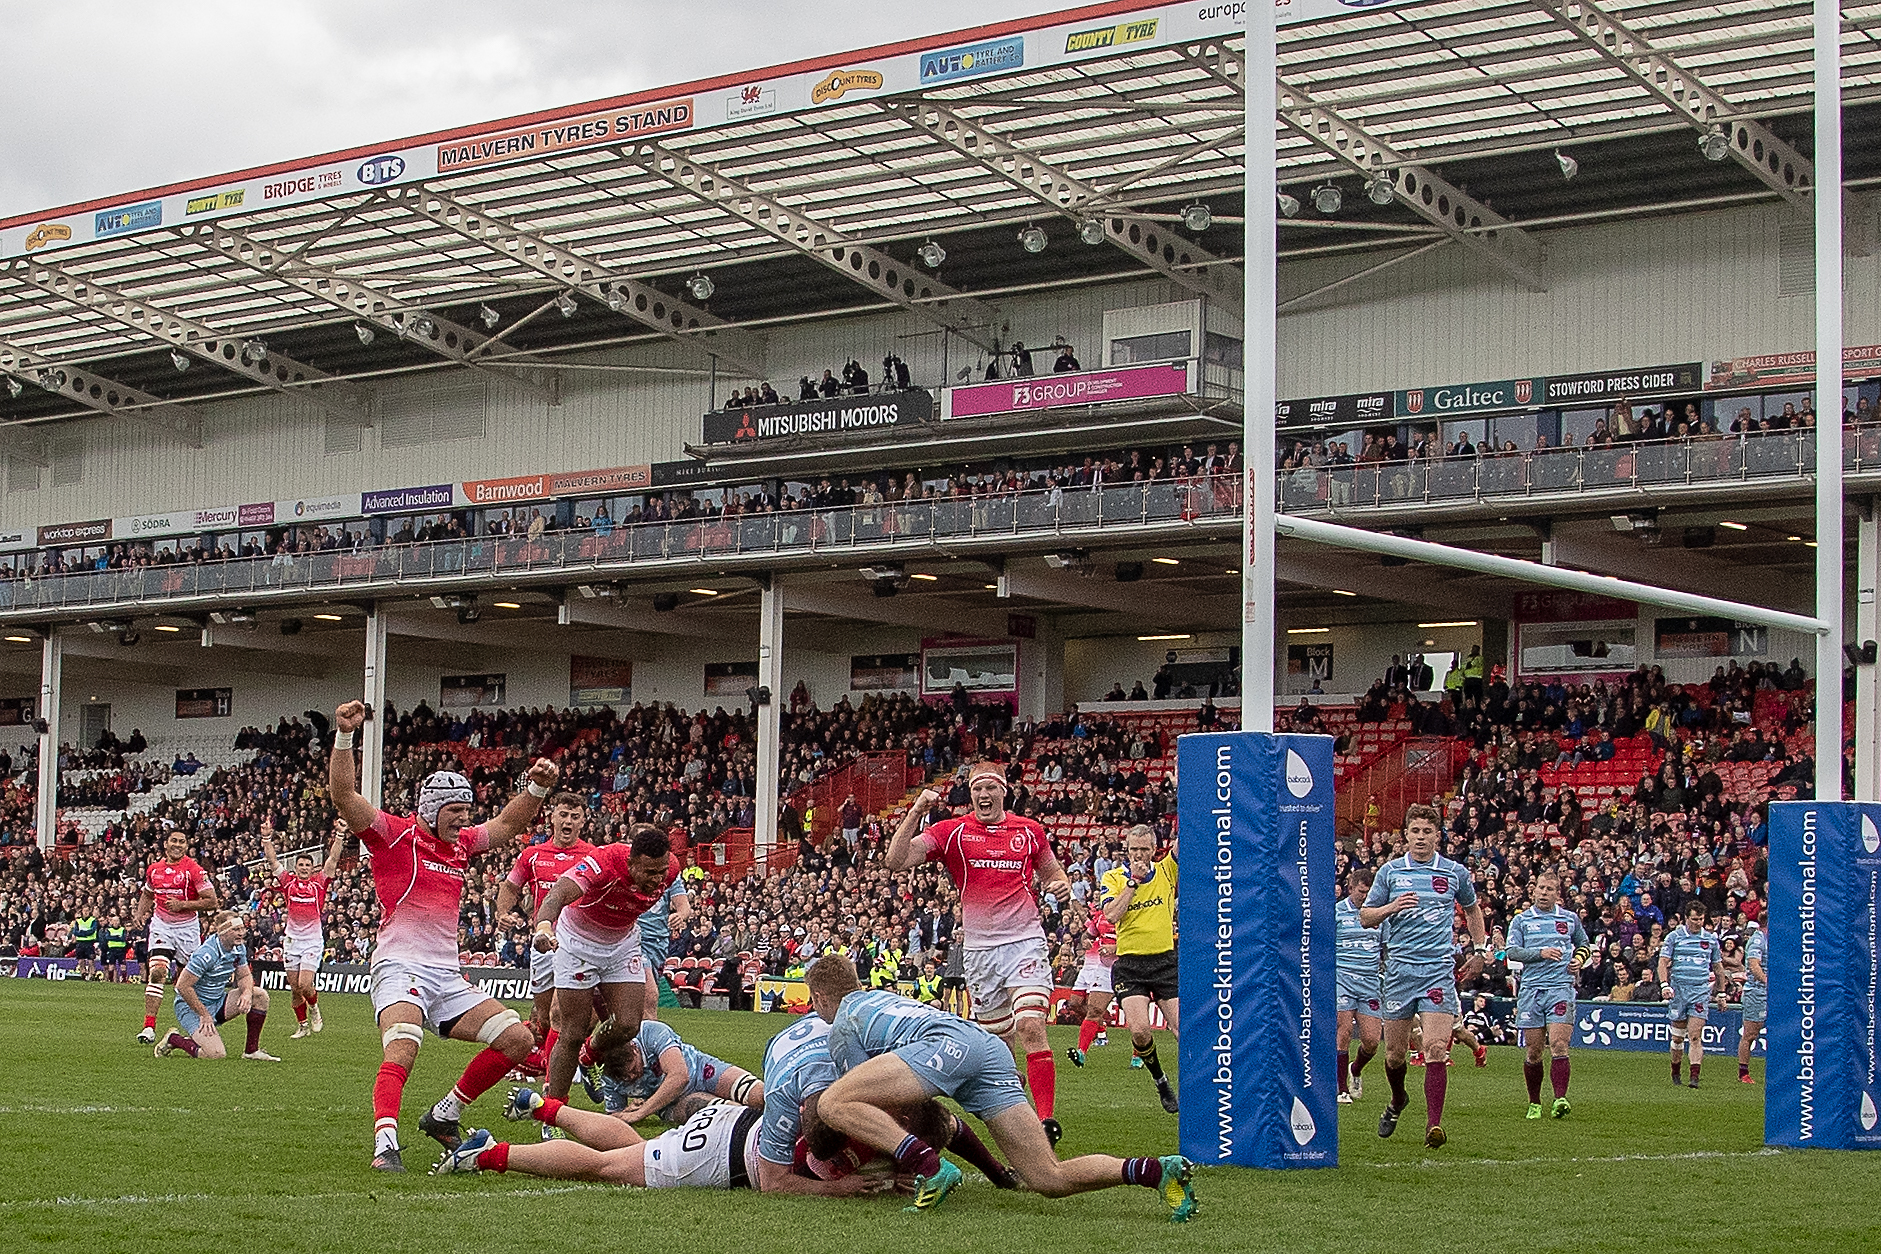 2020 RUGBY UNION INTER SERVICES CHAMPIONSHIP STAYS AT KINGSHOLM